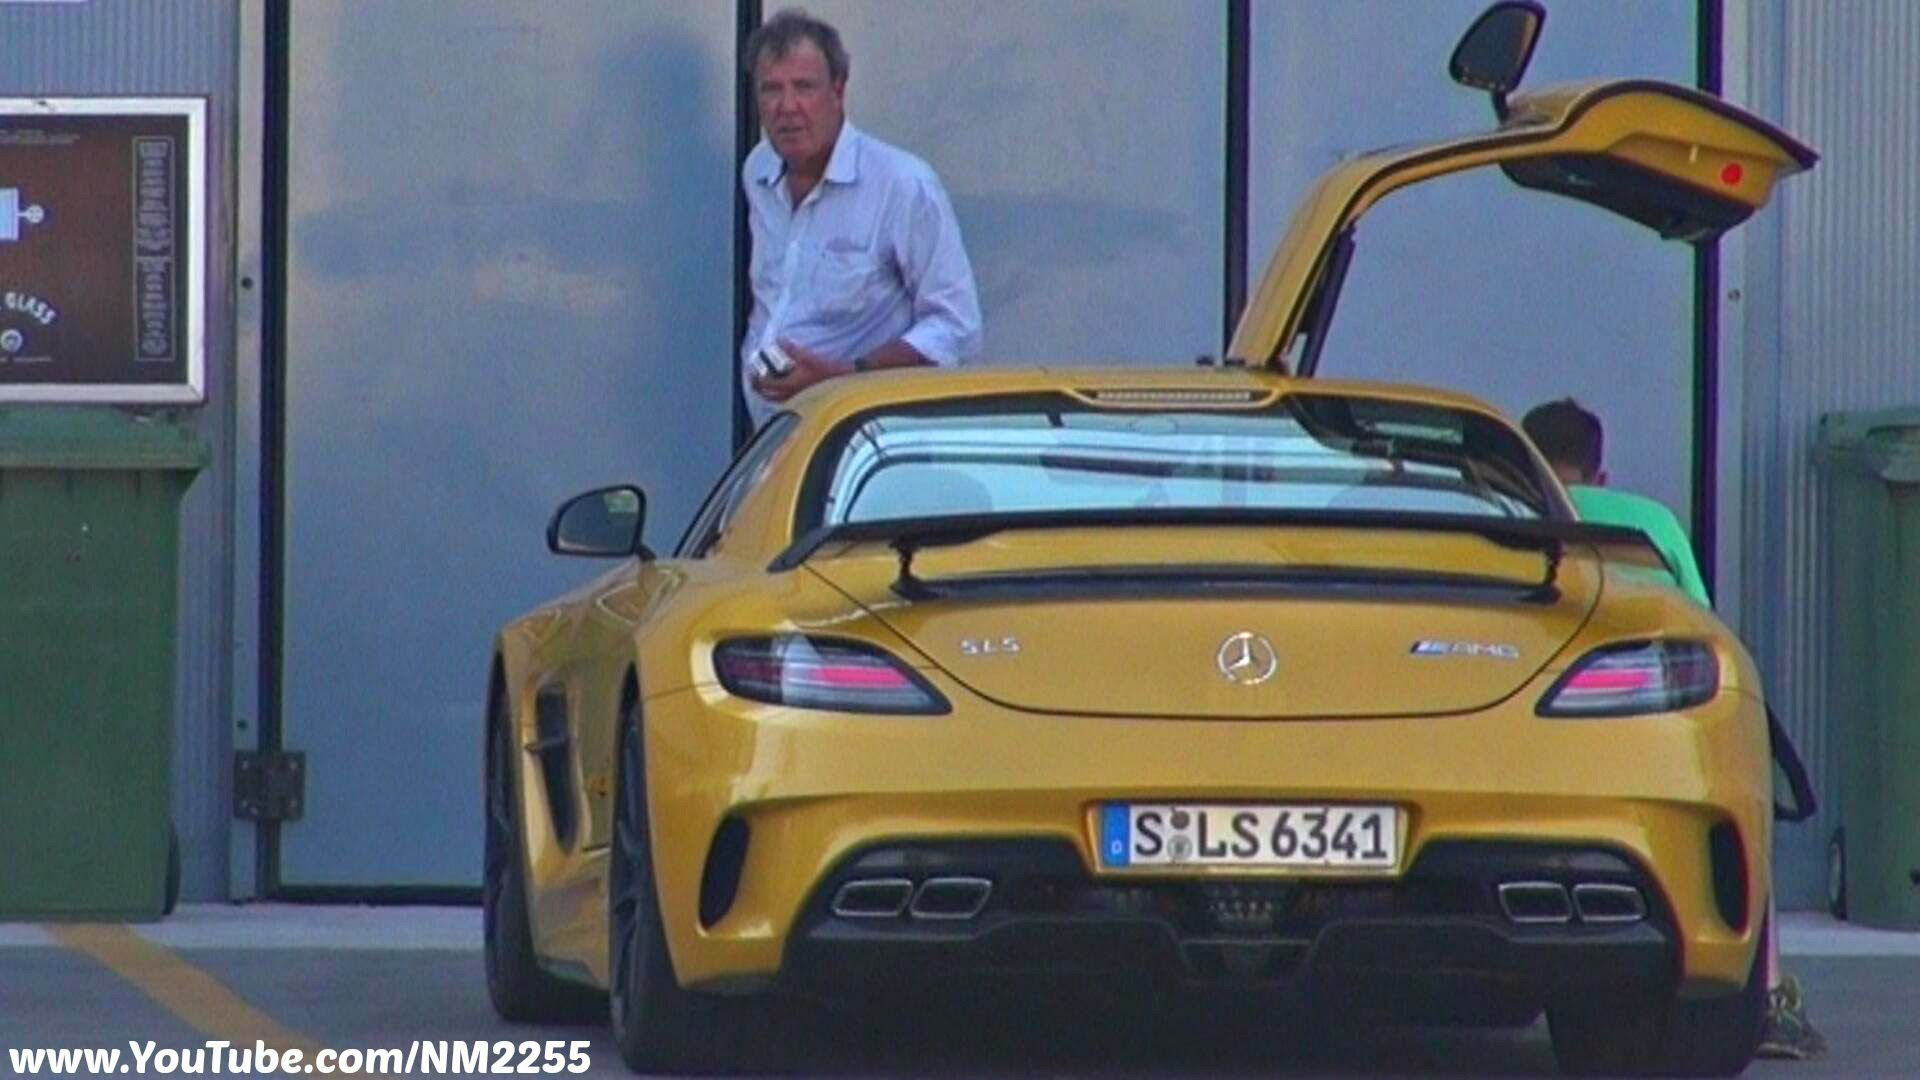 Jeremy Clarkson Cars: Jeremy Clarkson Spotted In The SLS AMG Black Series